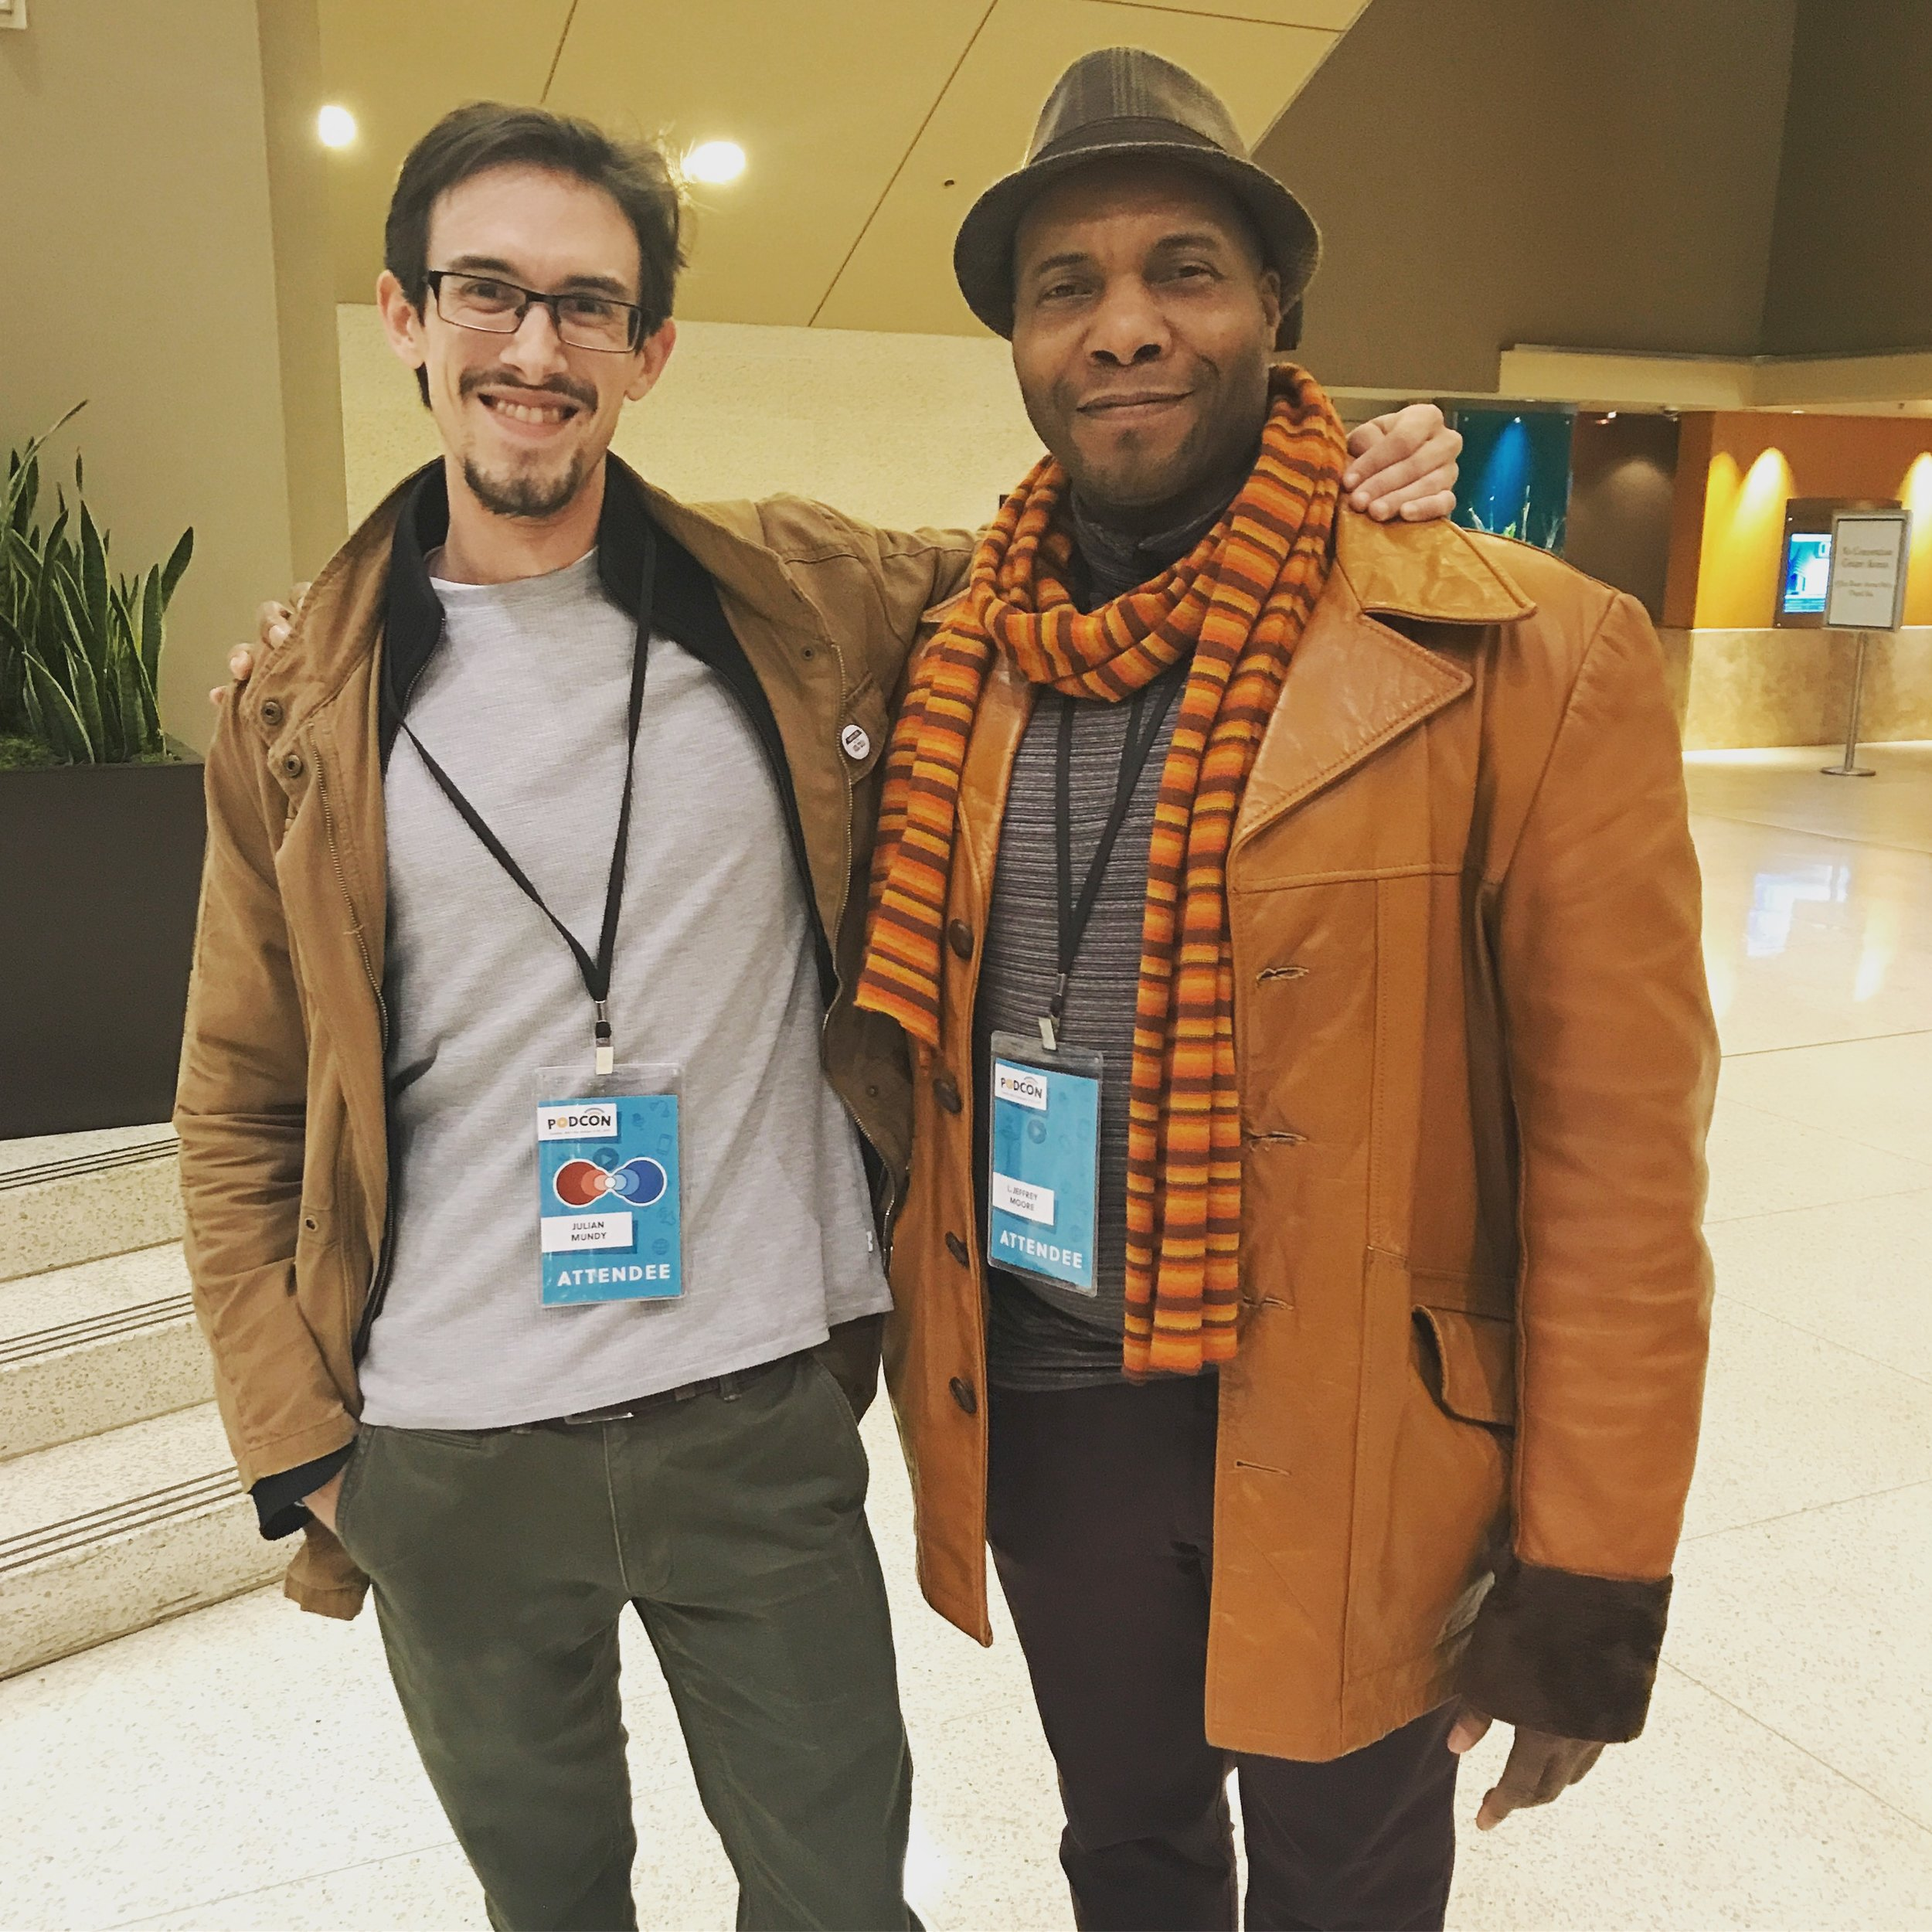 Writer for ars Paradoxica and the creator for my character Lou Gains, Julian Mundy.